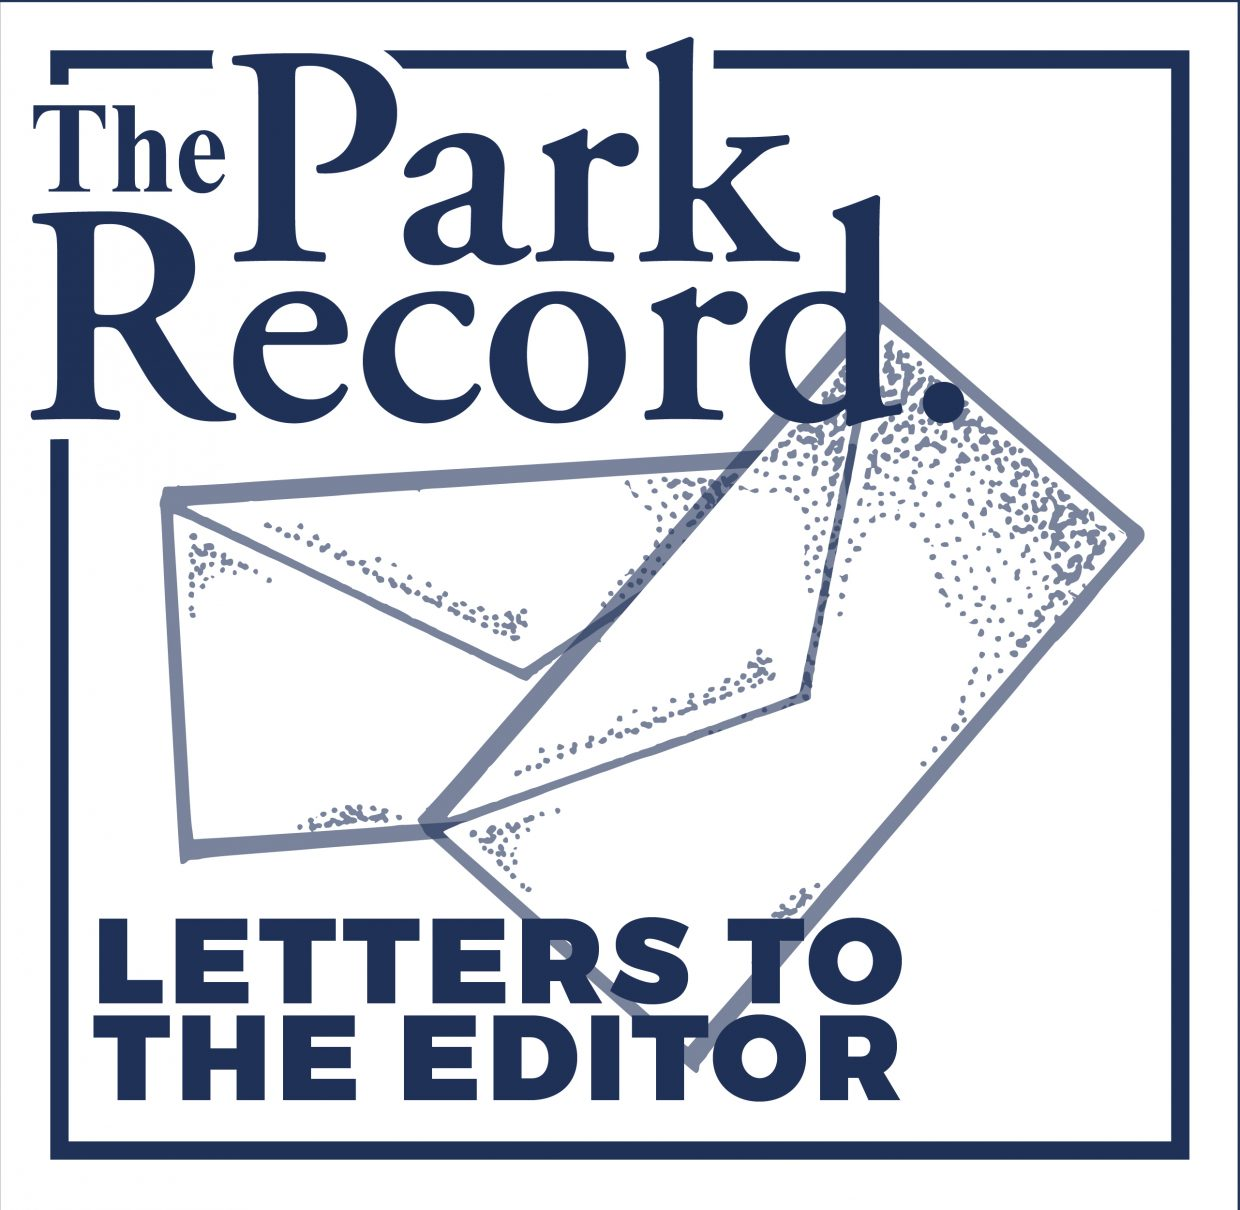 Letters Passing Proposition 4 Would Make For A Stronger Utah